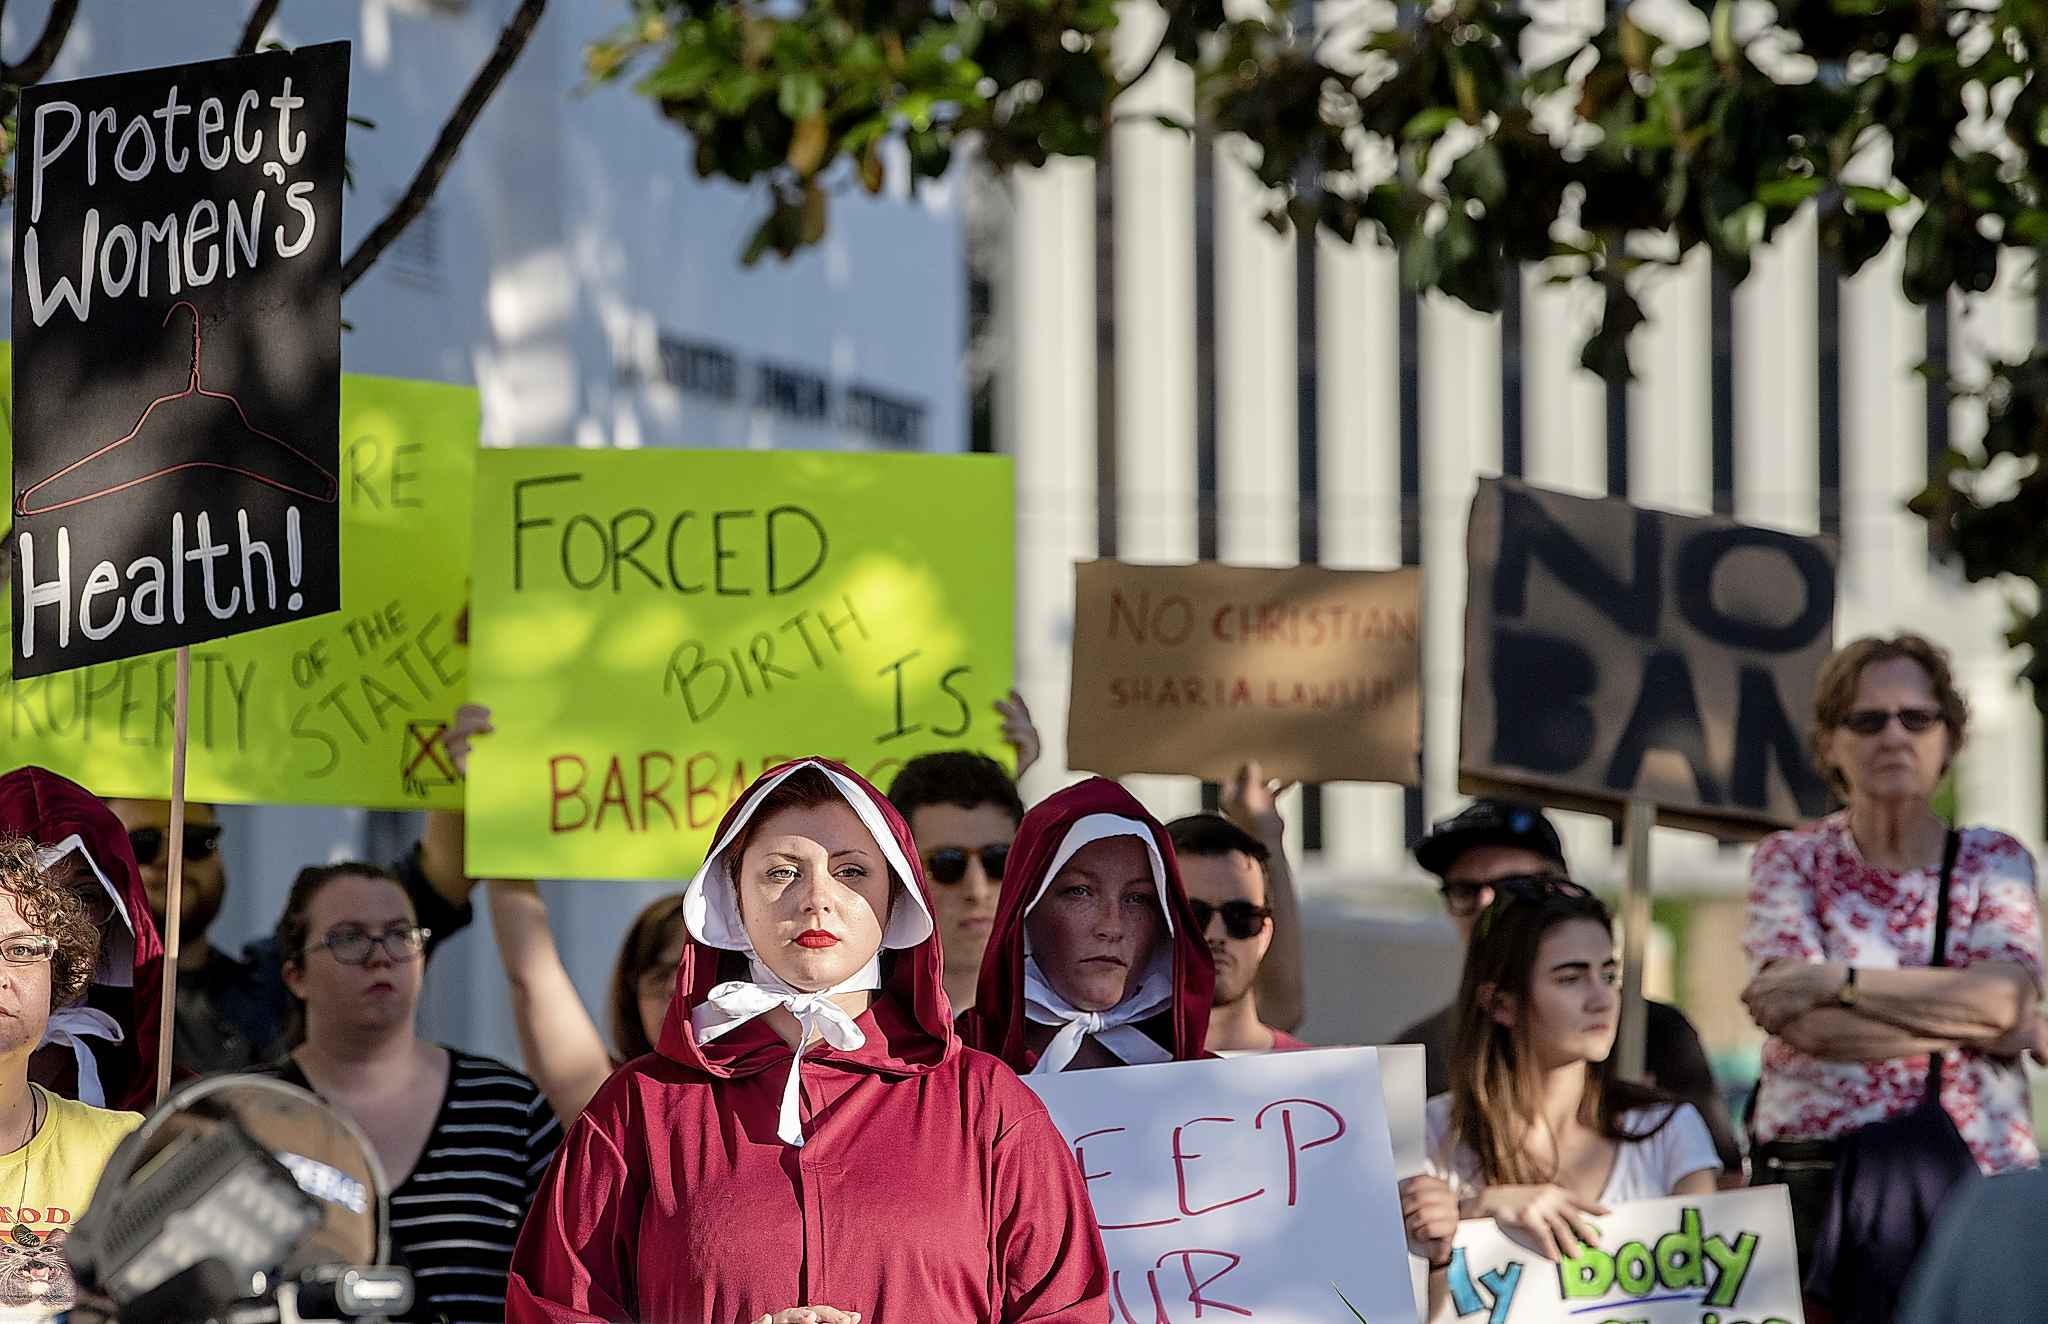 Protesters rally against the abortion bill outside of the Alabama Statehouse in Montgomery, Ala. (Mickey Welsh / The Montgomery Advertiser)